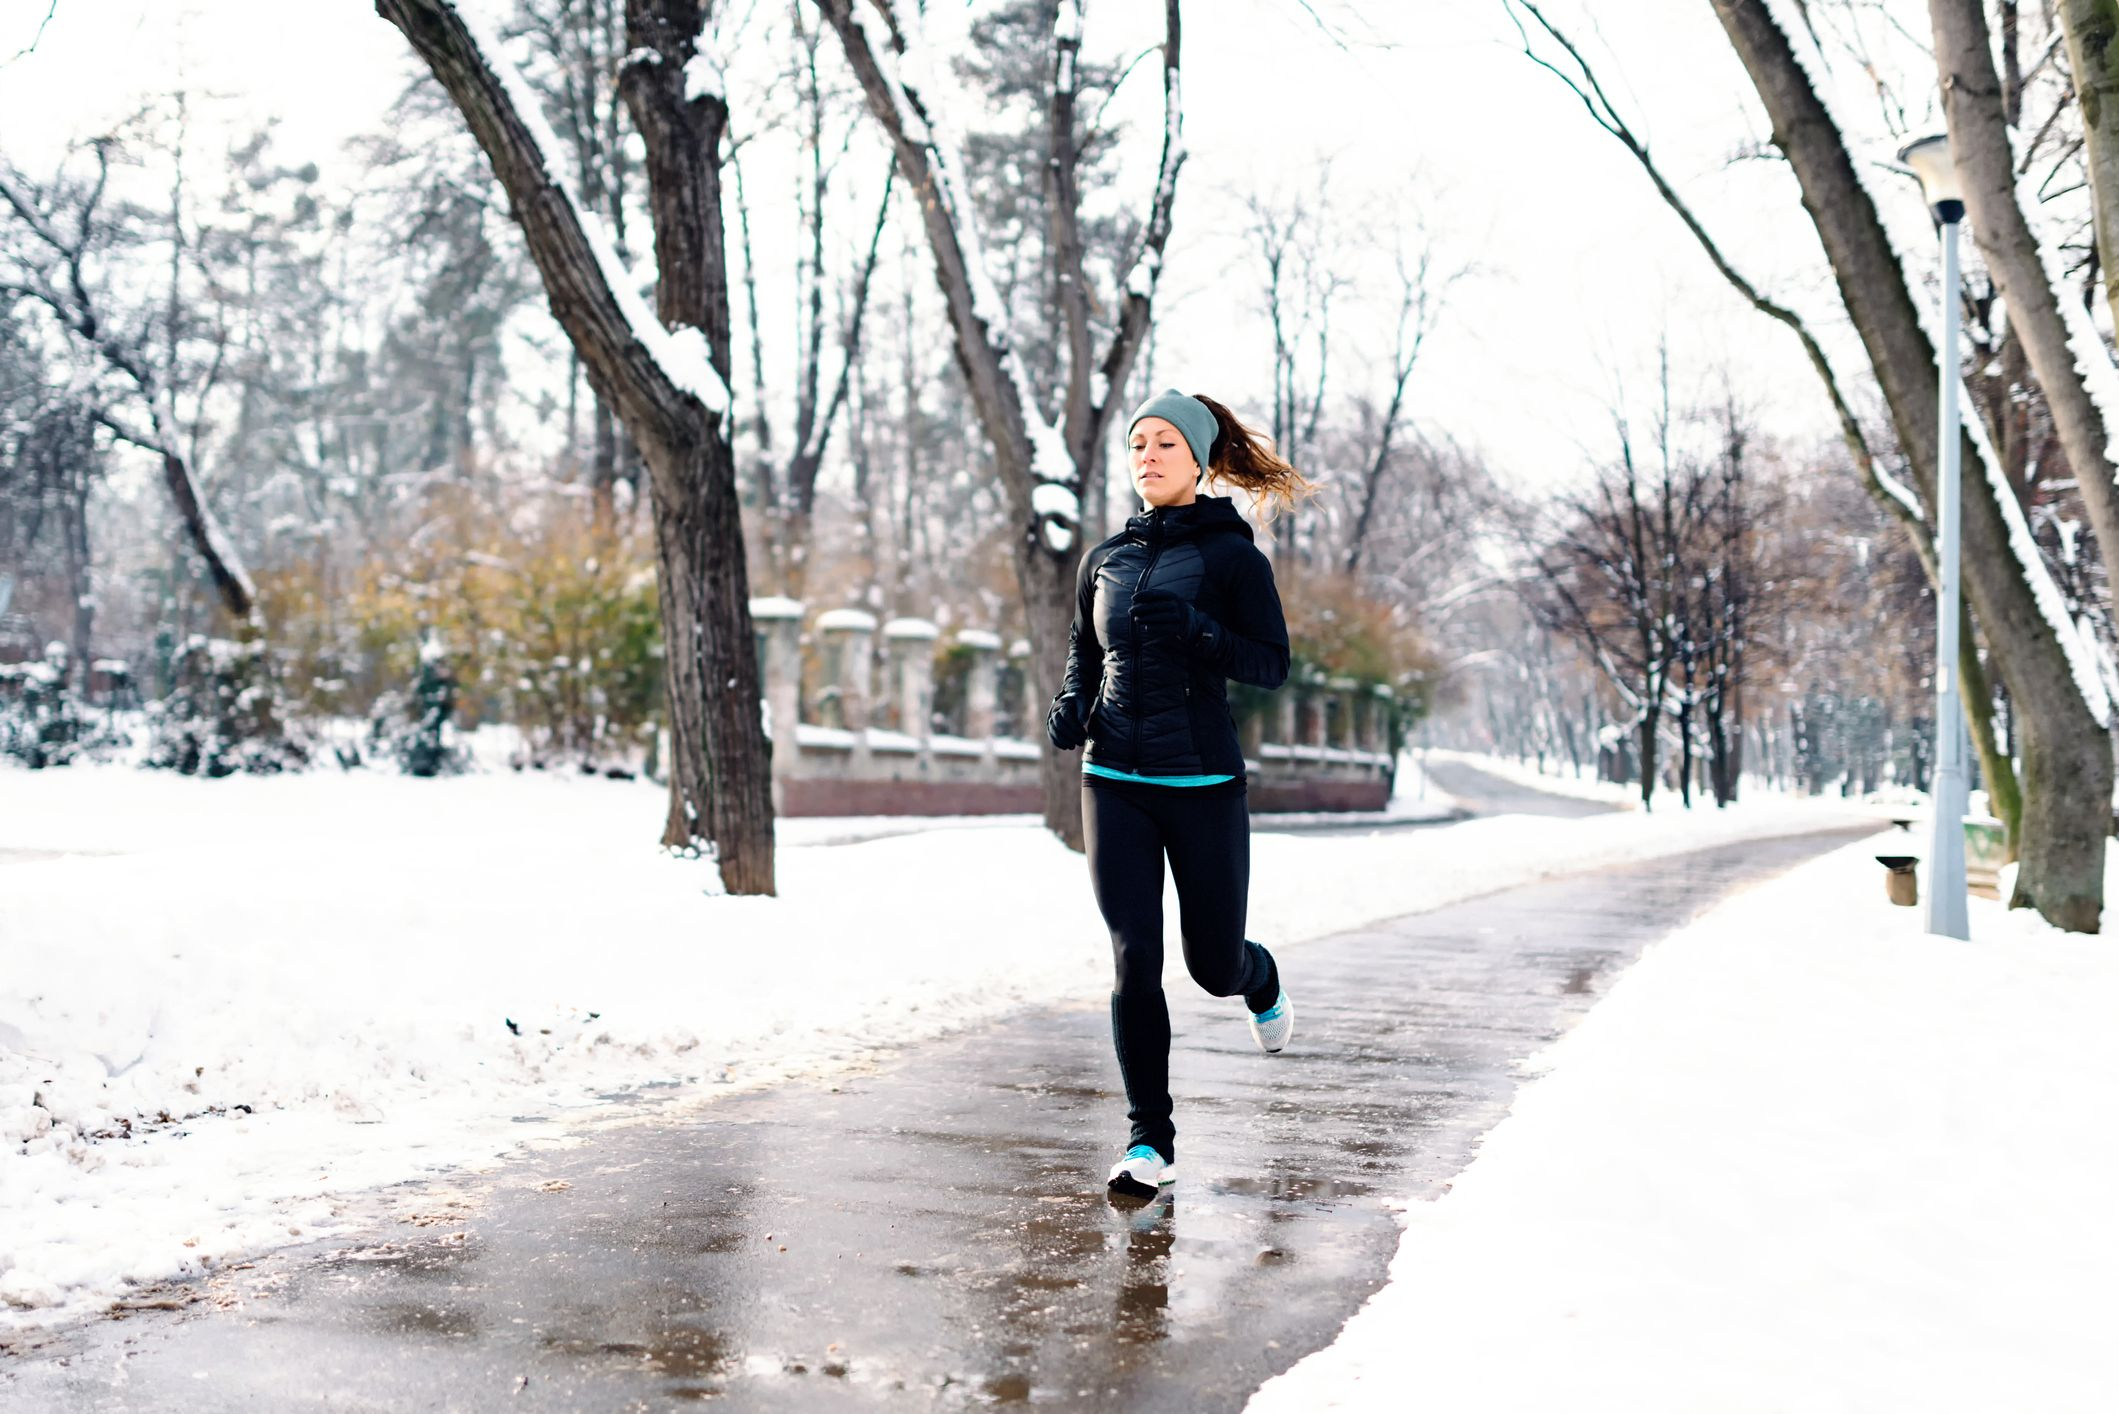 How to Handle Running on Snow and Ice